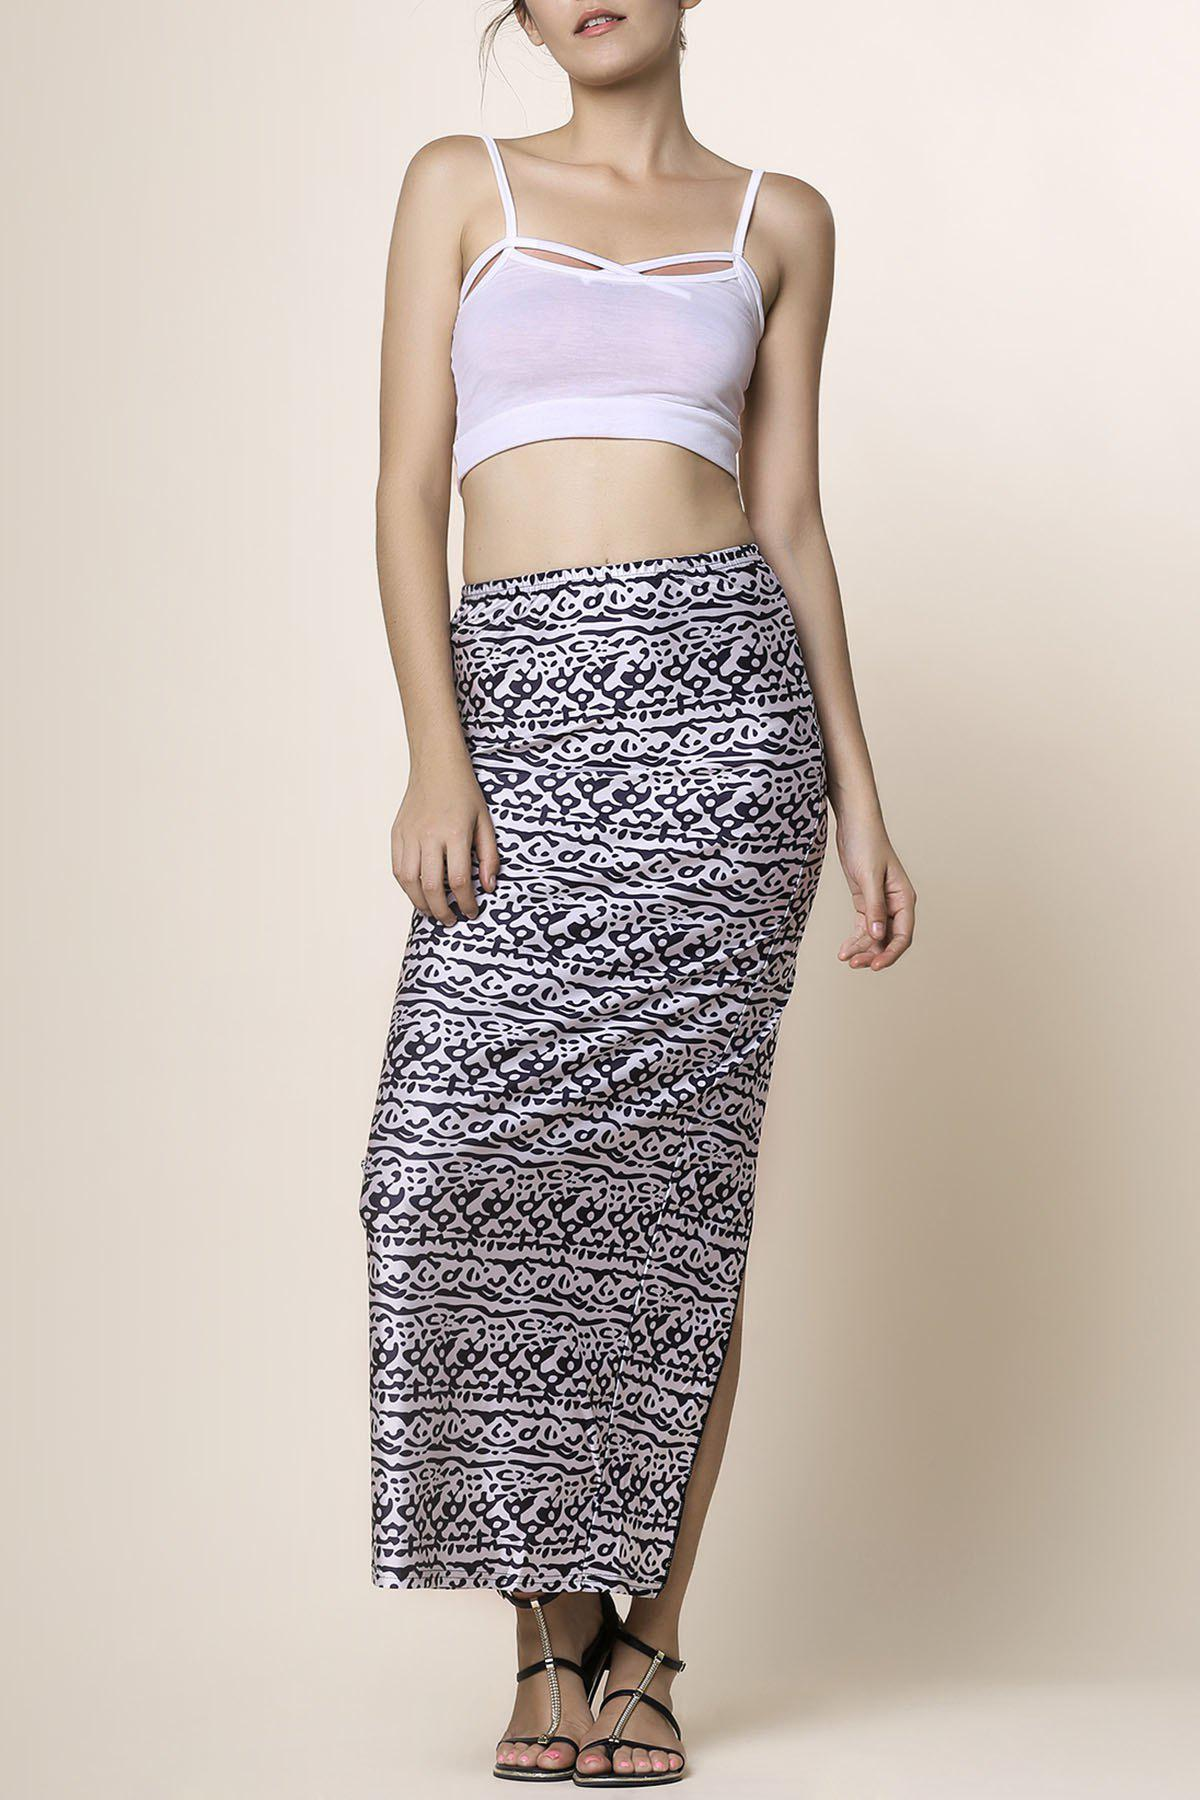 Cami Top with Printed High Waisted Skirt - BLACK S